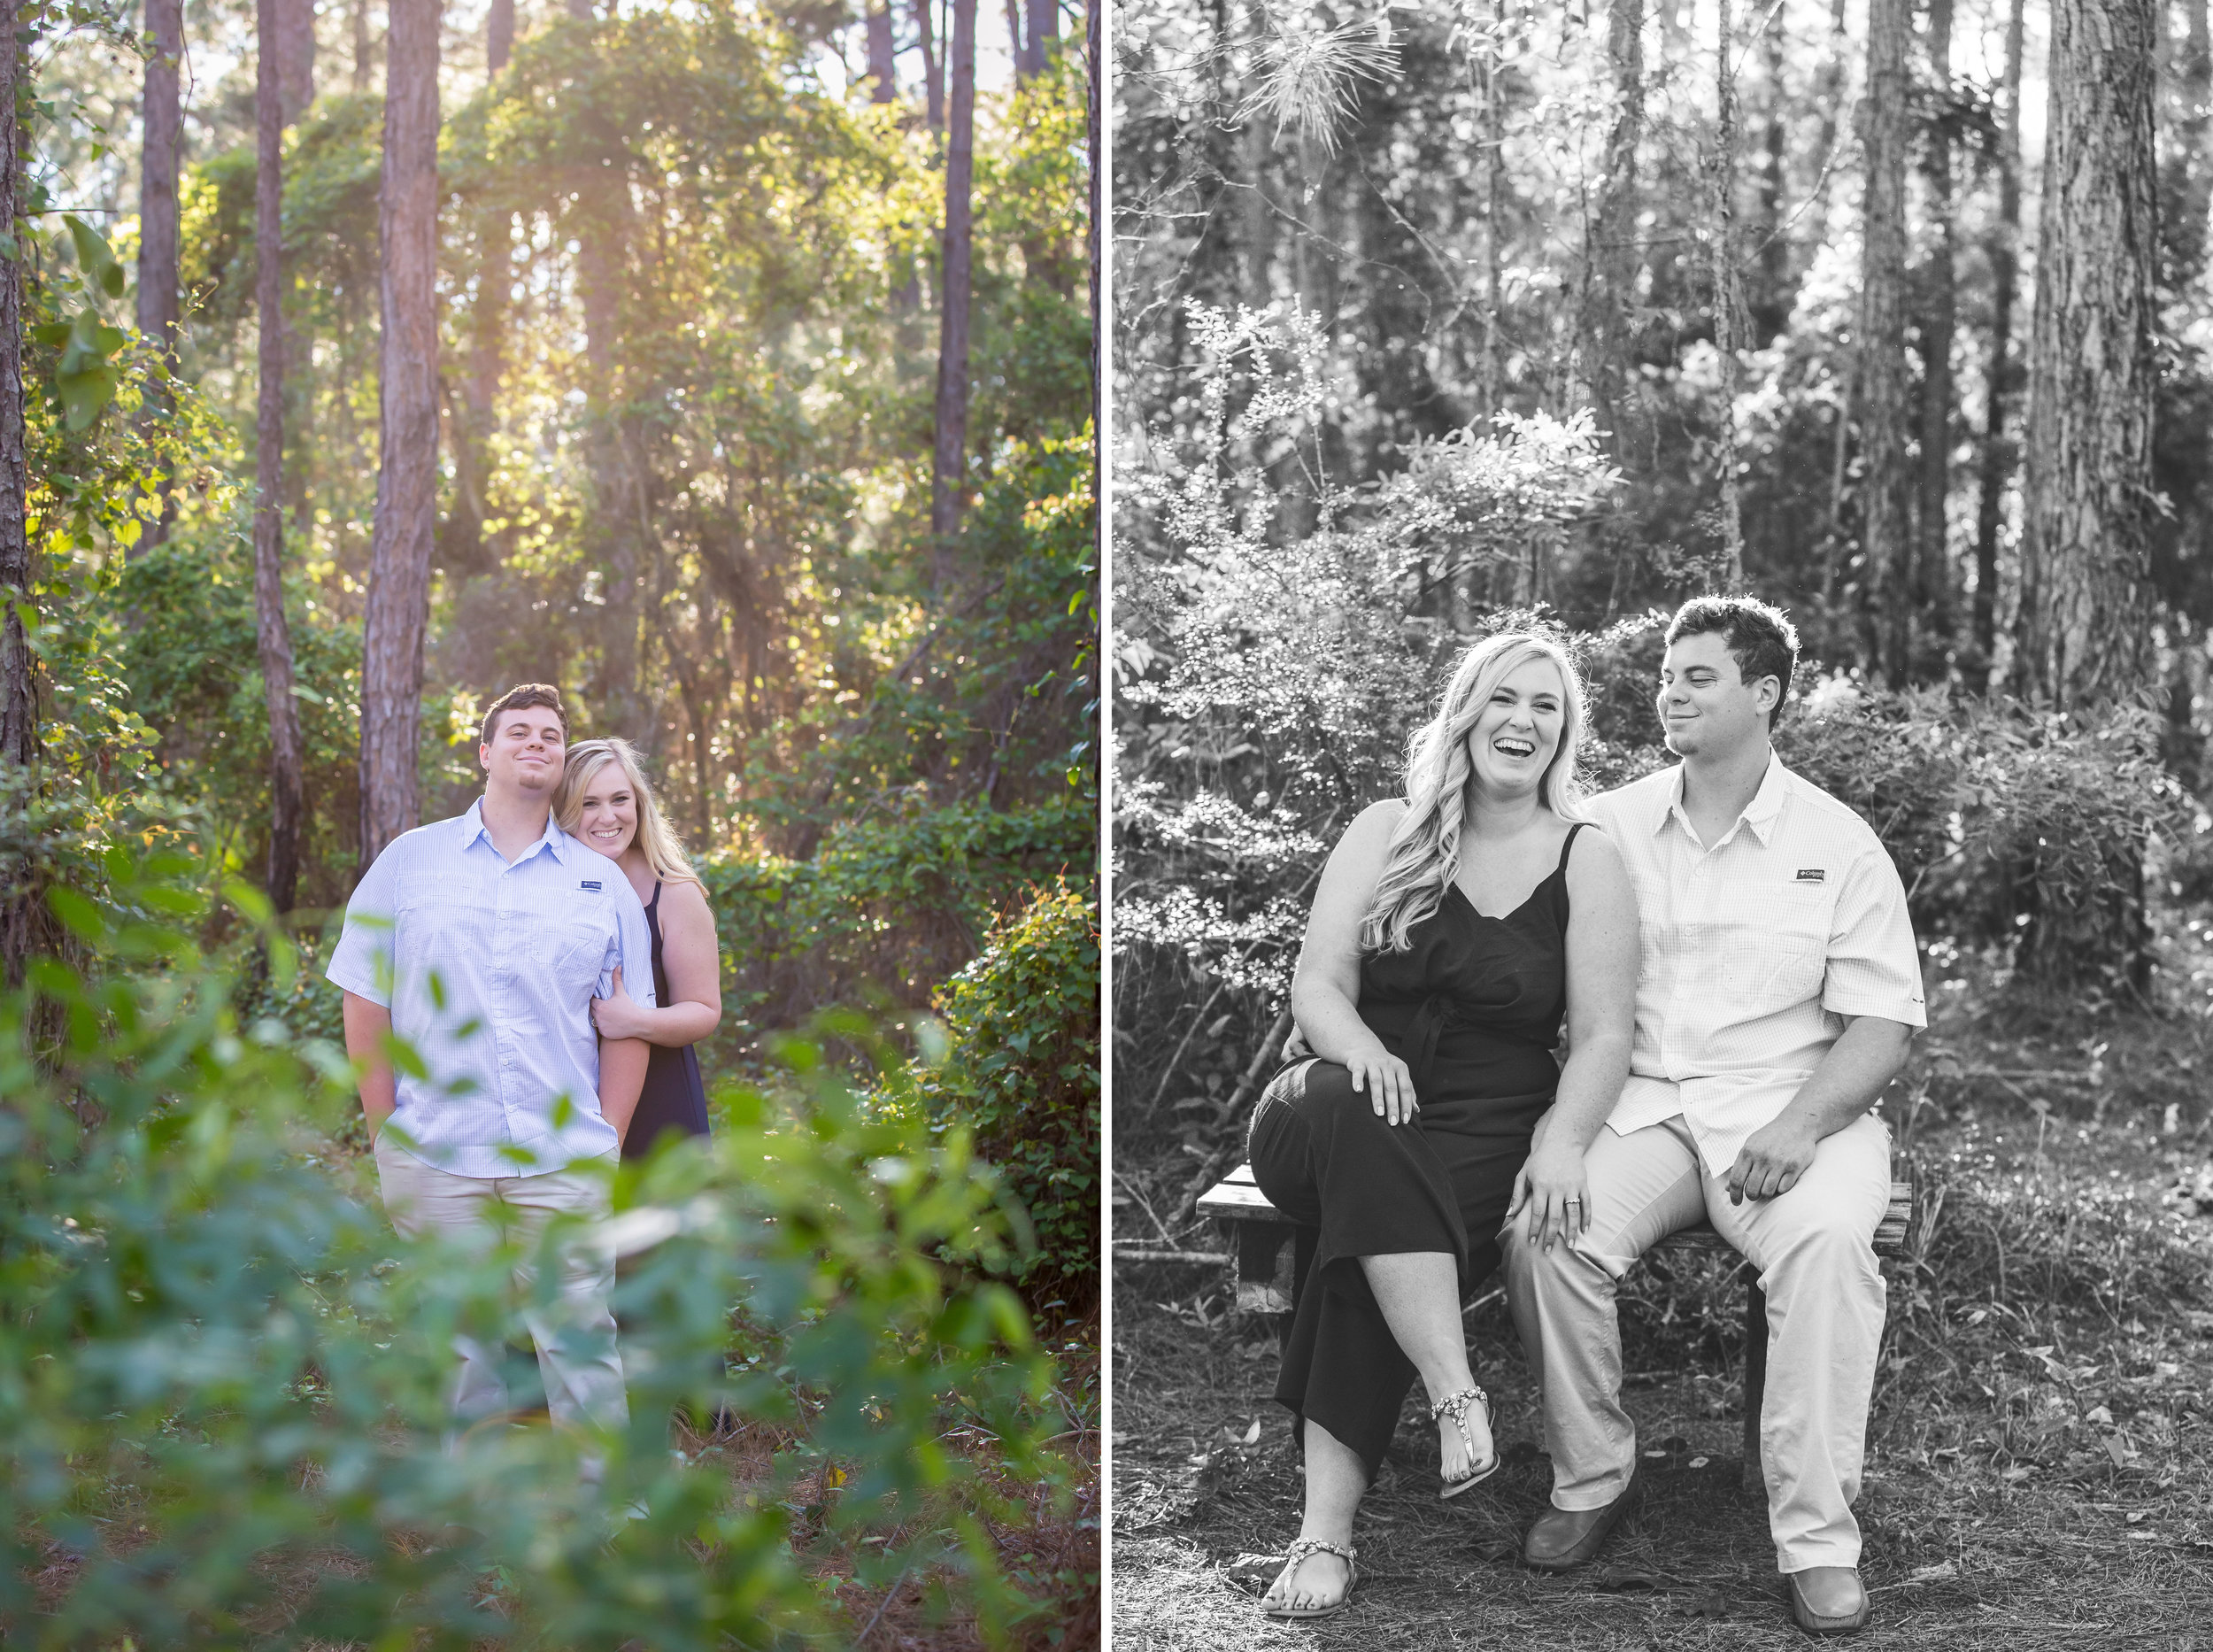 Mobile-Dauphin-Island-Fairhope-Engagement-Photo-Alabama-Florida-Wedding-Photographer-Shelby-Jacob-3.jpg